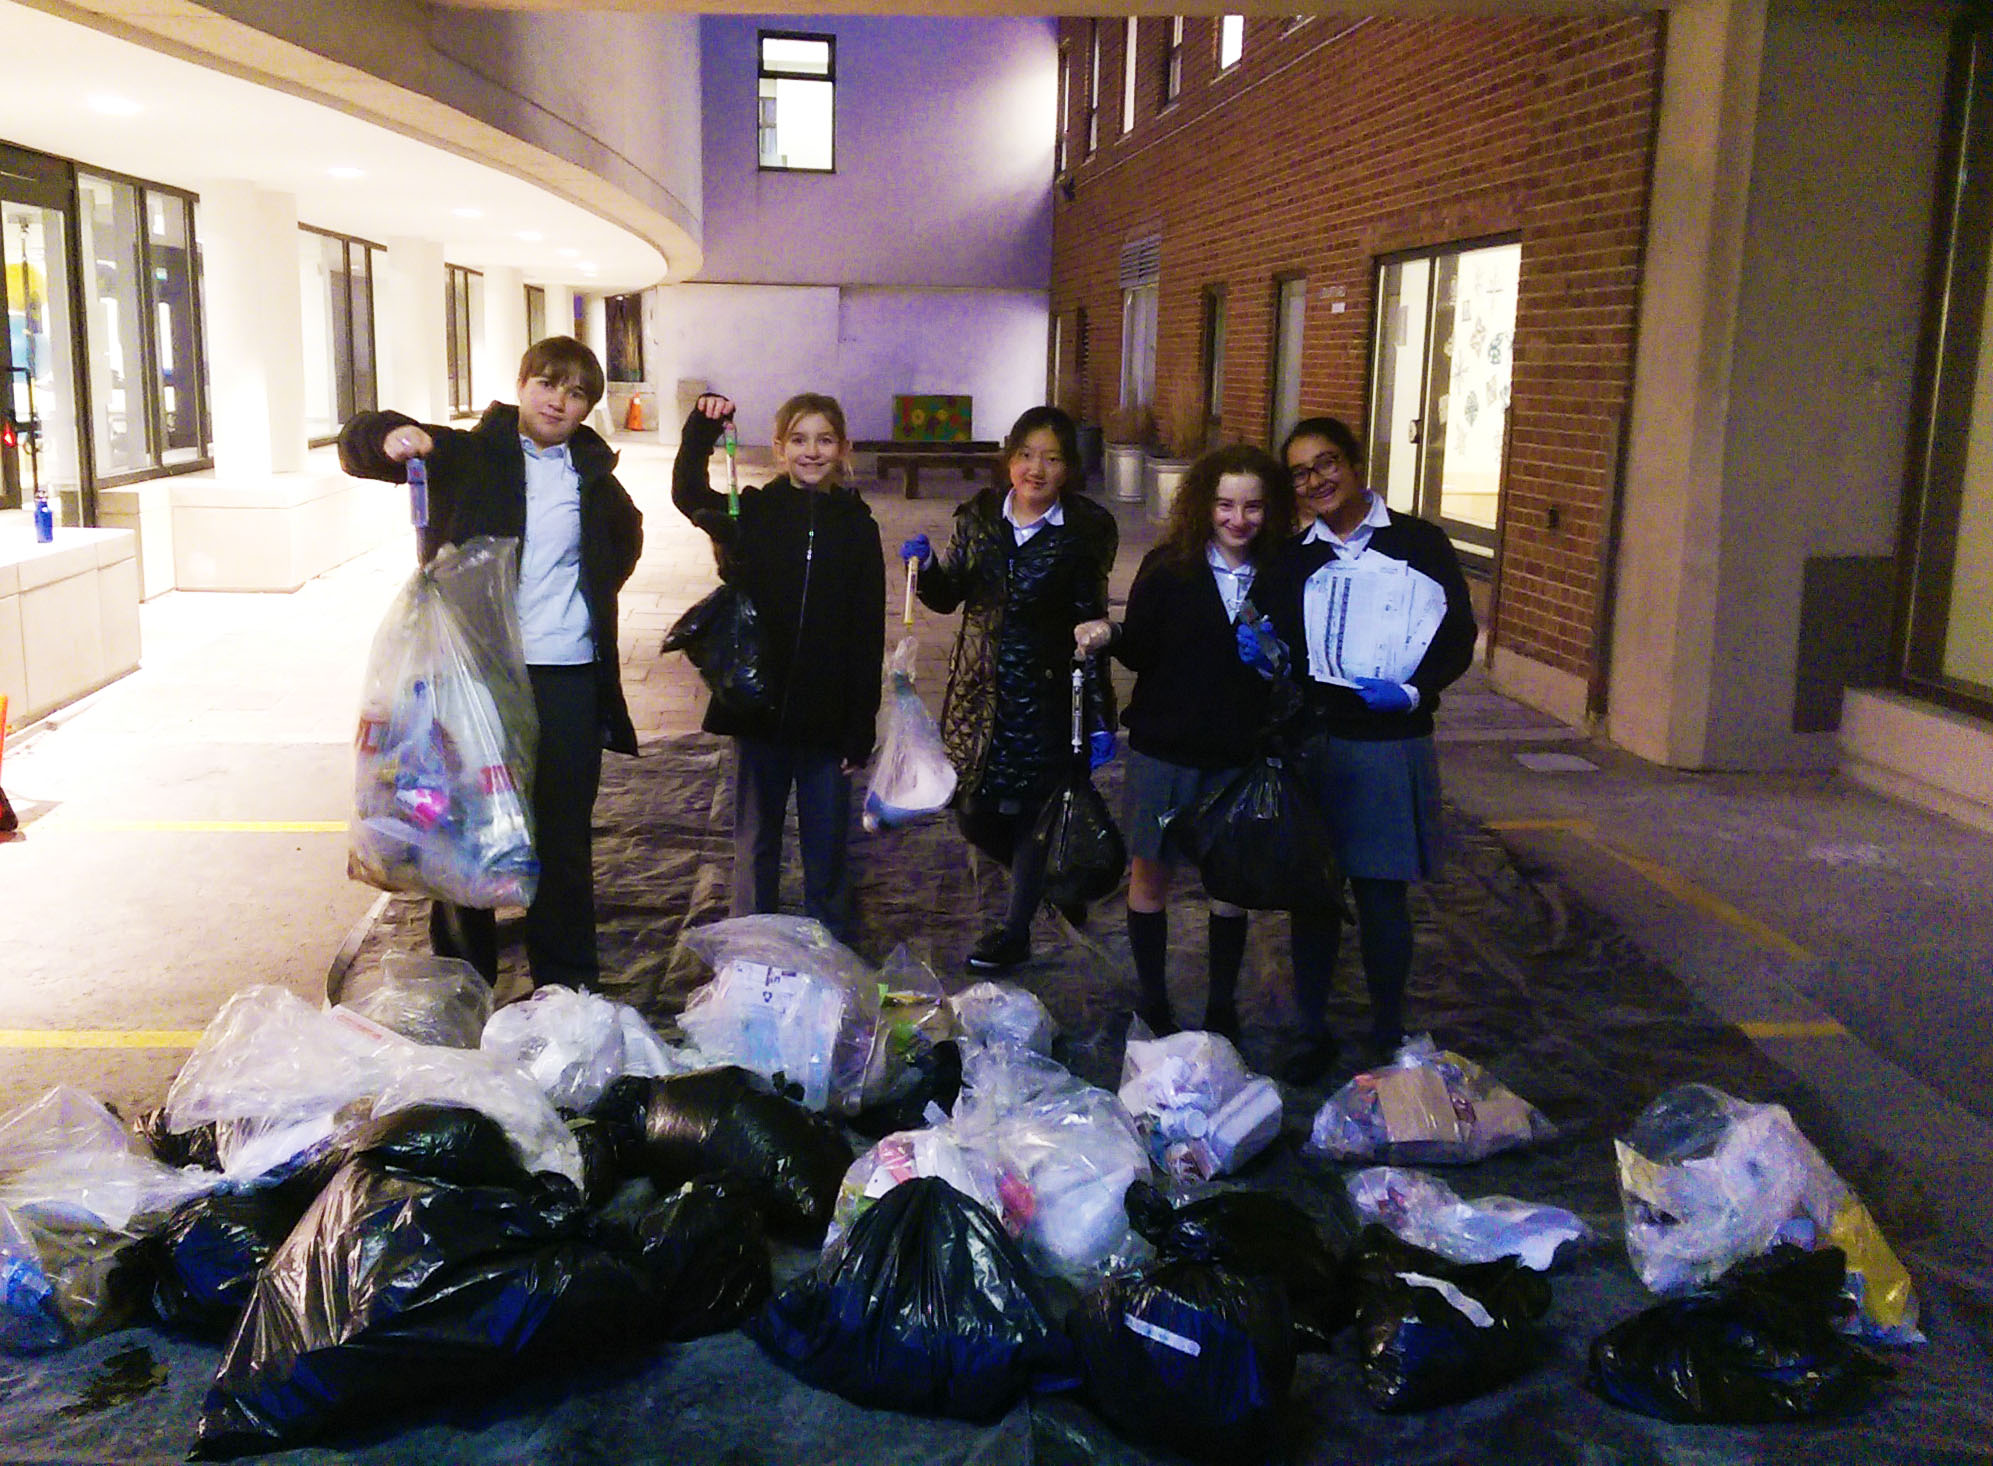 The Eco-Team in action, cleaning up The York School.